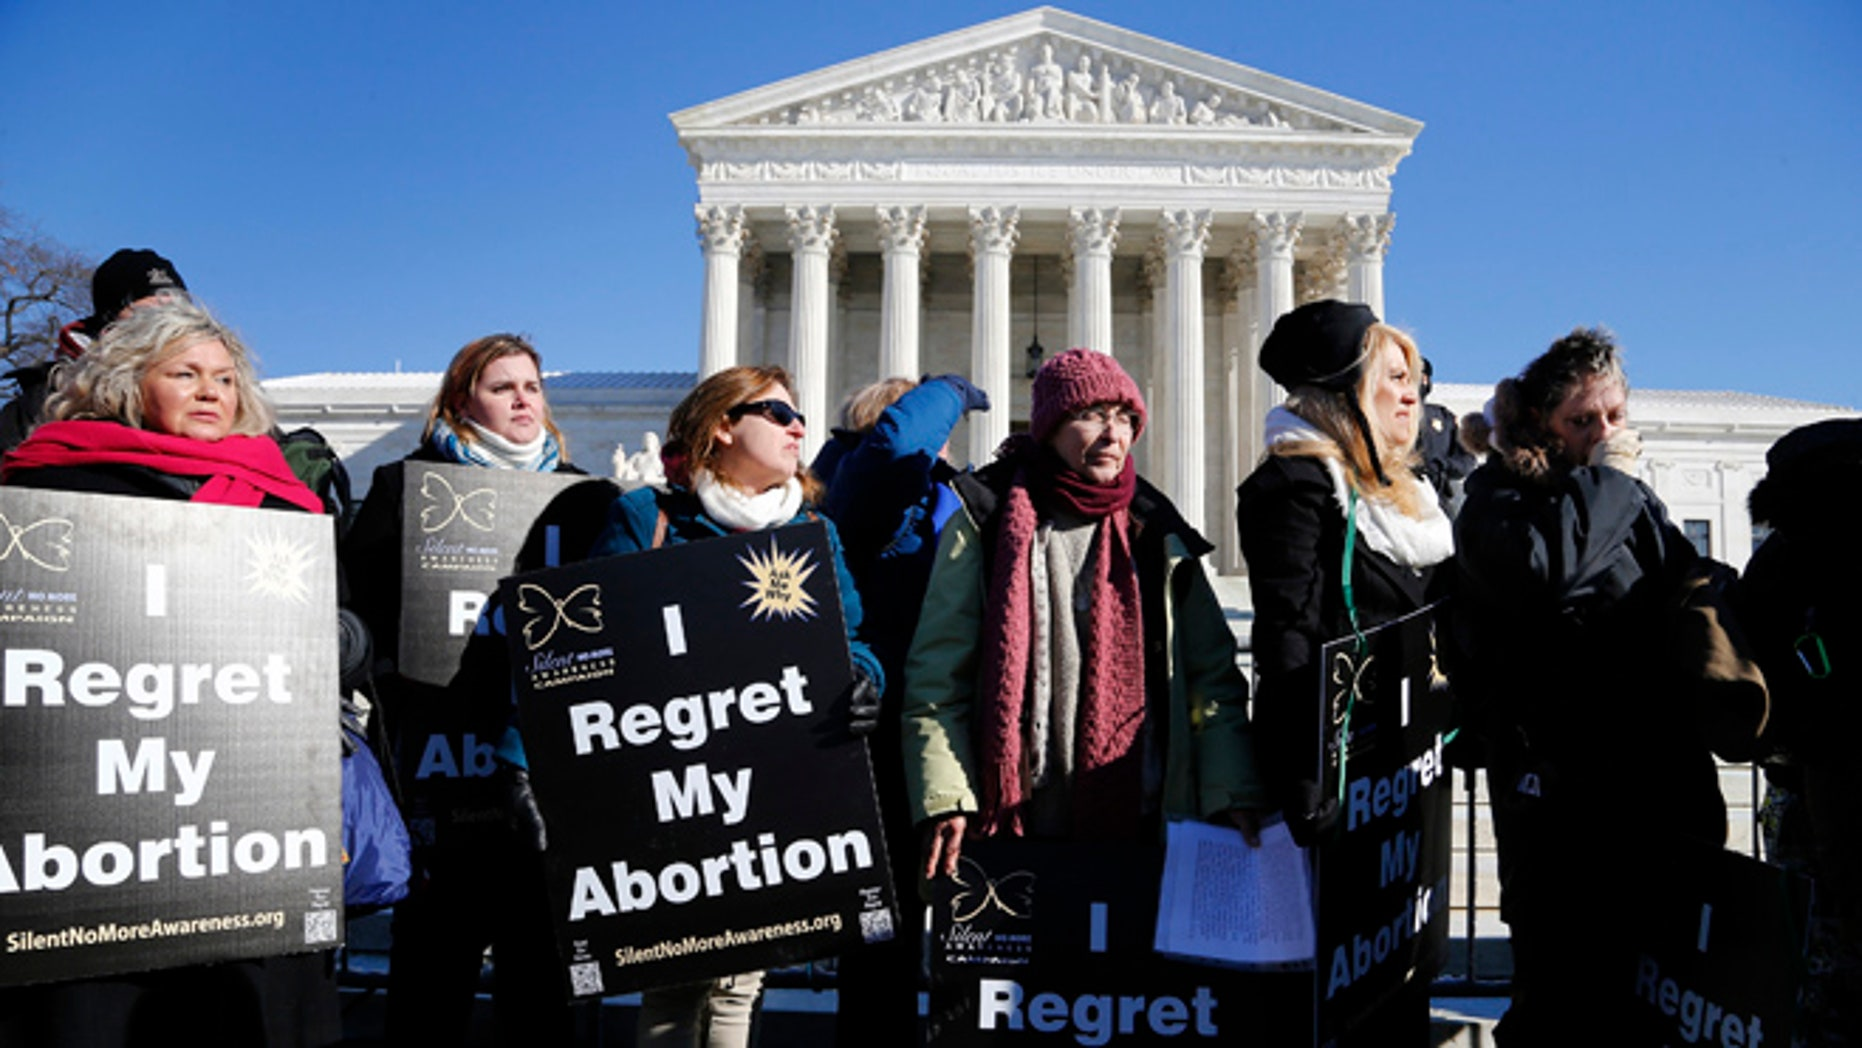 FILE: January 22, 2014: Anti-abortion demonstrators in front of the Supreme Court in Washington, D.C.